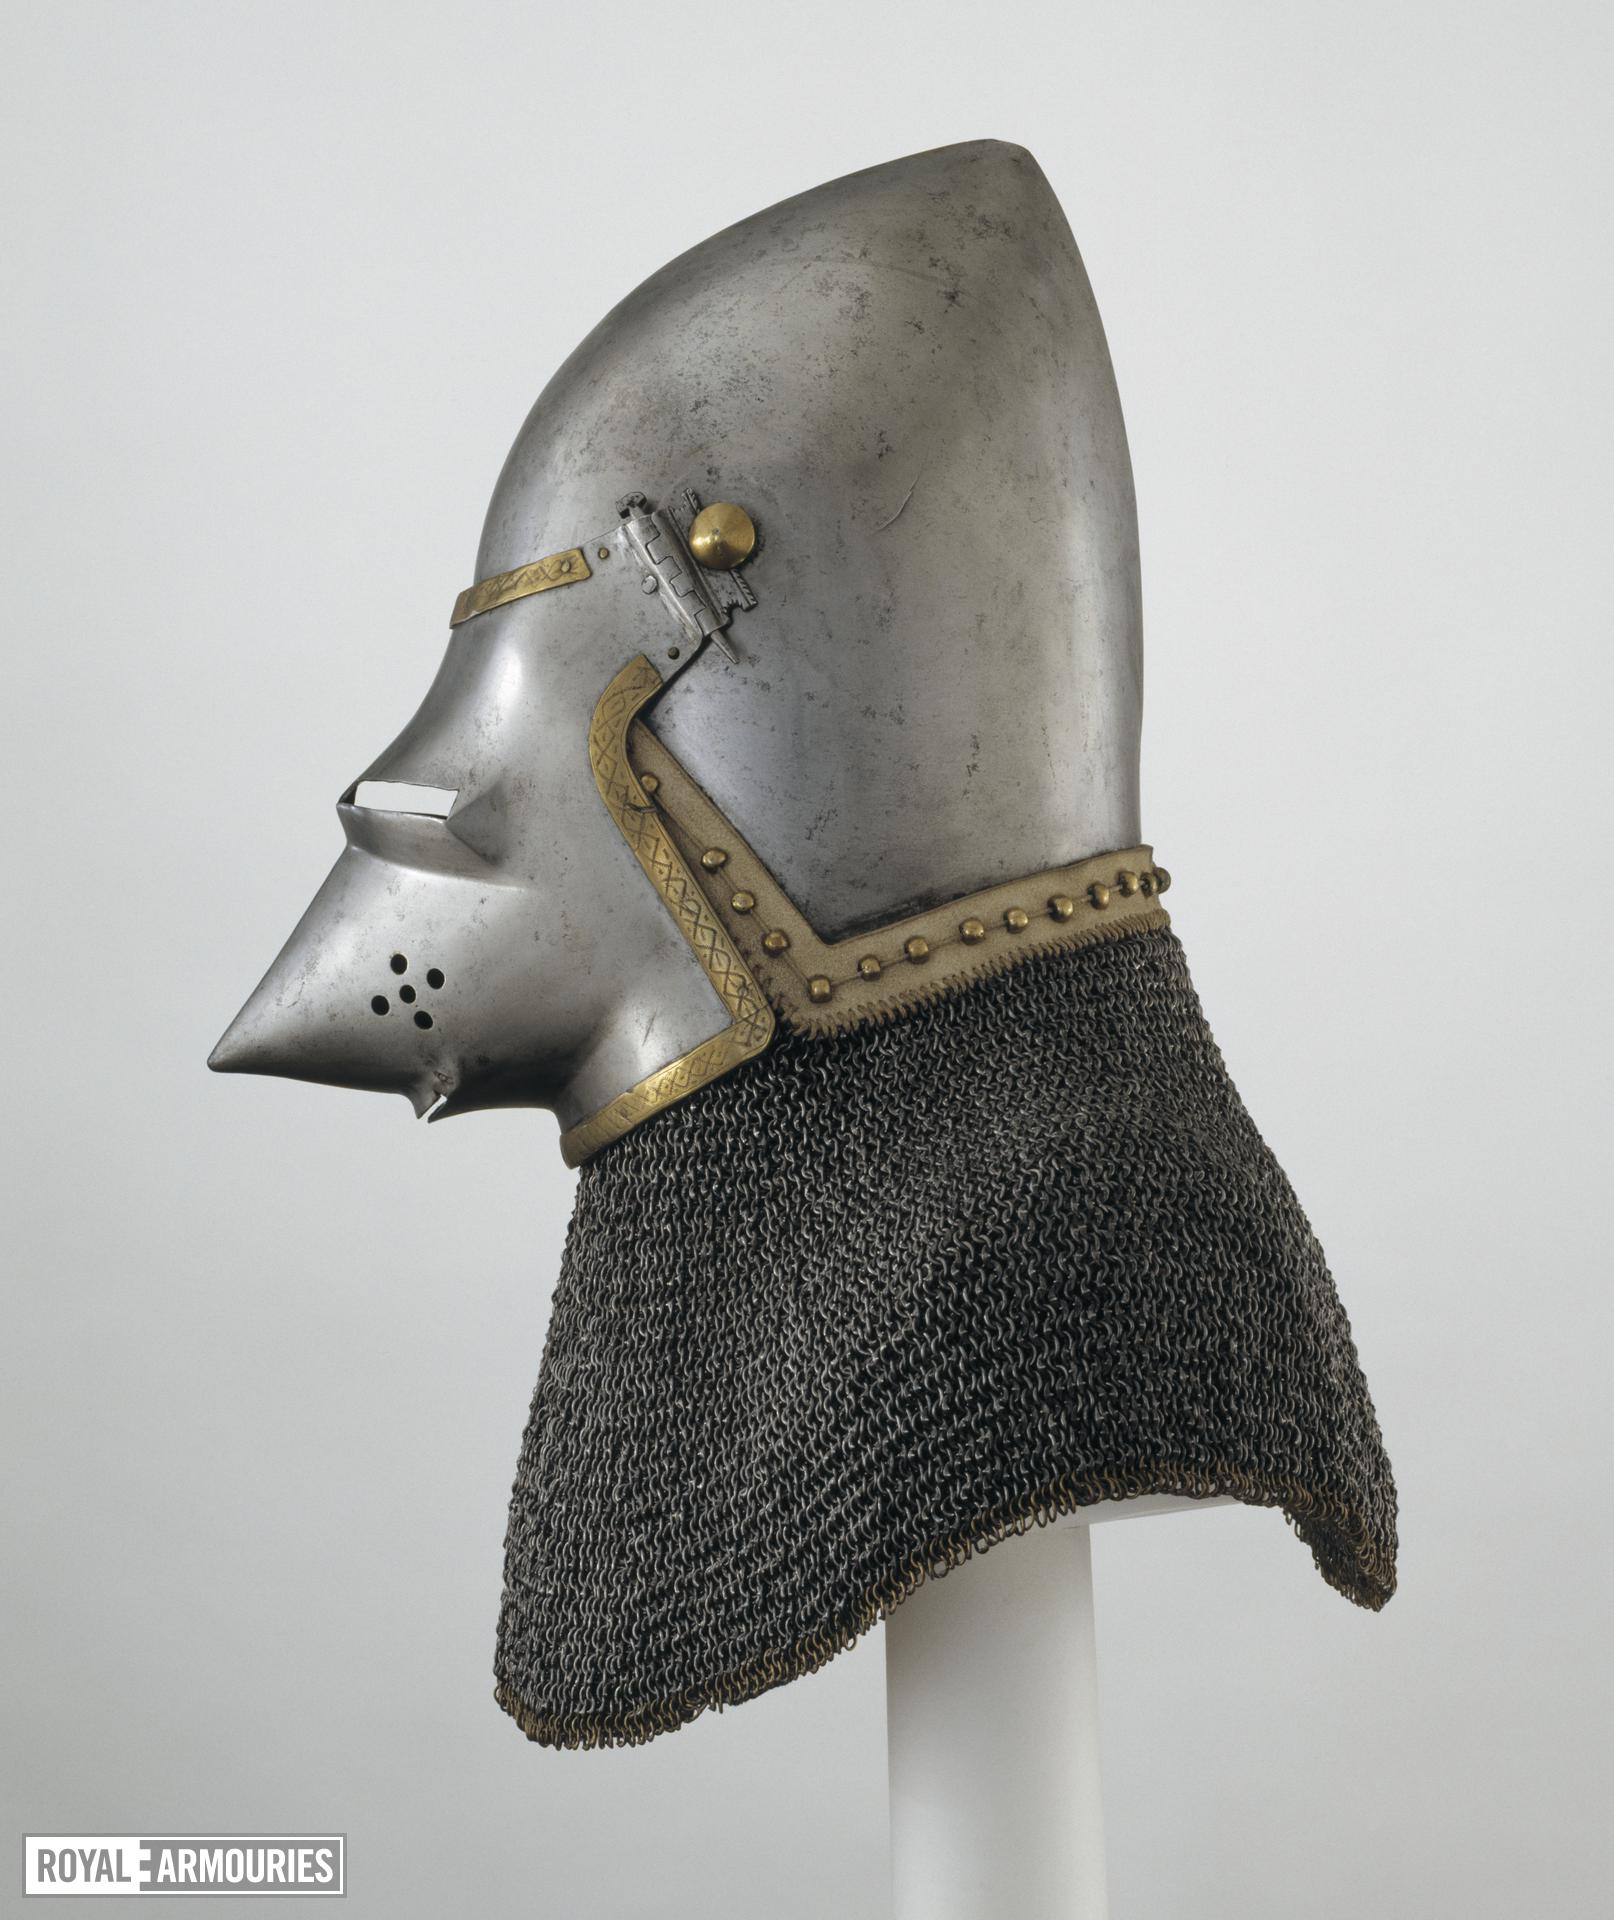 Bacinet - The Lyle bacinet Late 14th century bascinet with 'houndskull' visor and aventail